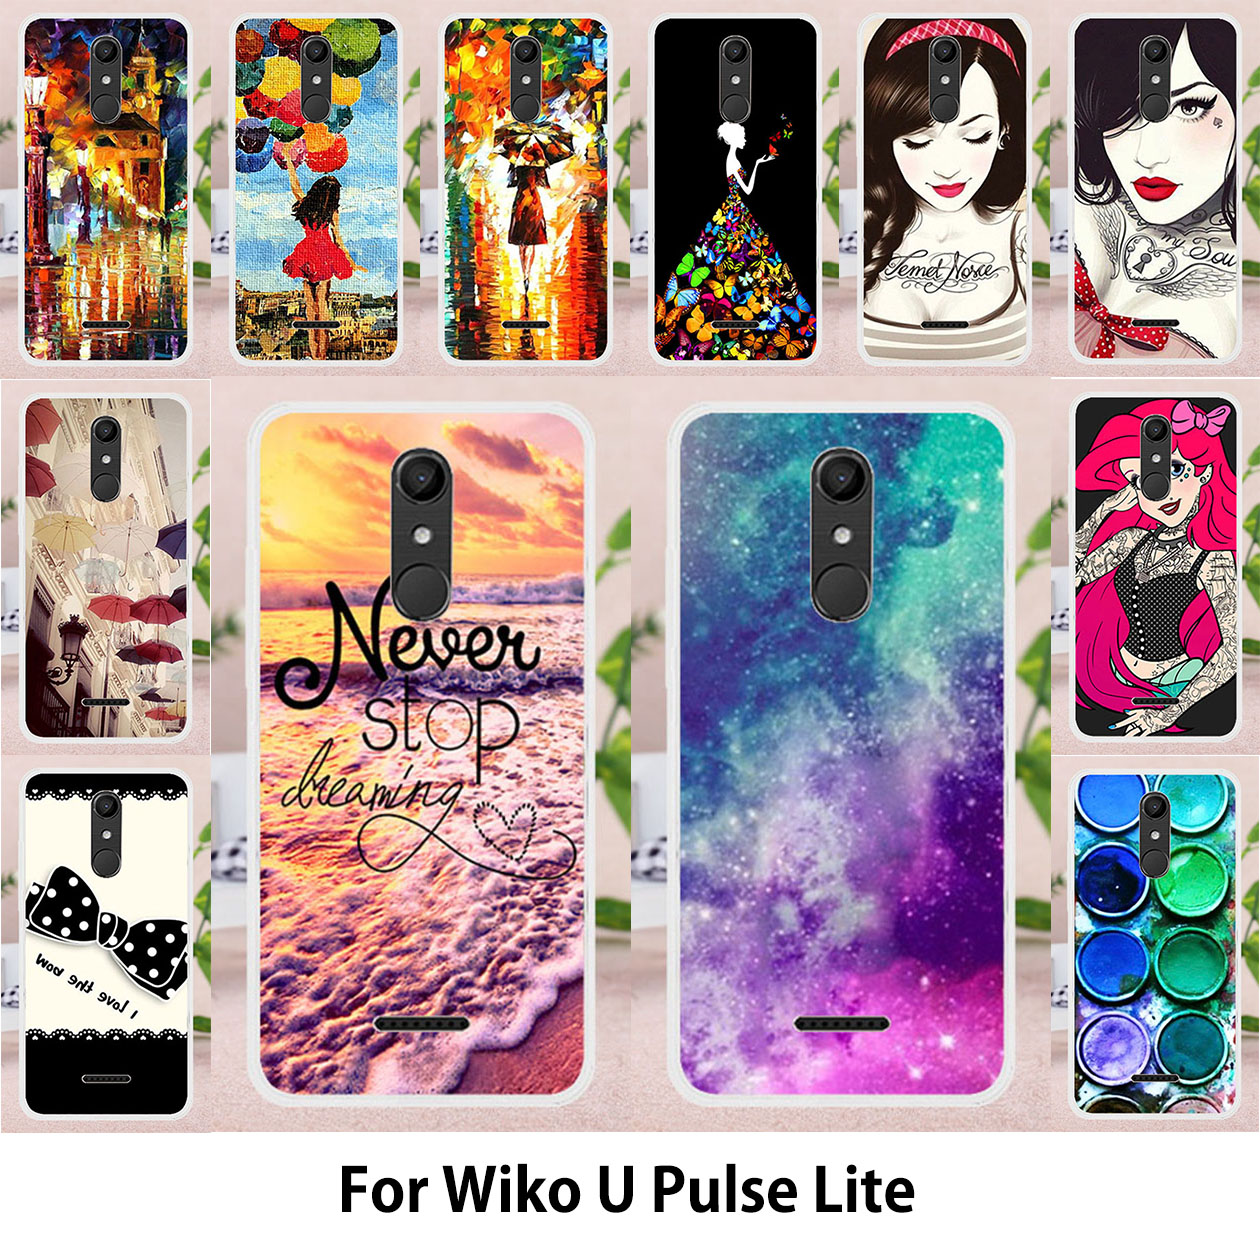 Fitted Cases Hearty Taoyunxi Soft Tpu Phone Cases For Wiko Upulse Lite U Pulse Lite 5.2 Inch Overs Umbrella Girls Ballon Bags Candies Phone Back We Have Won Praise From Customers Cellphones & Telecommunications